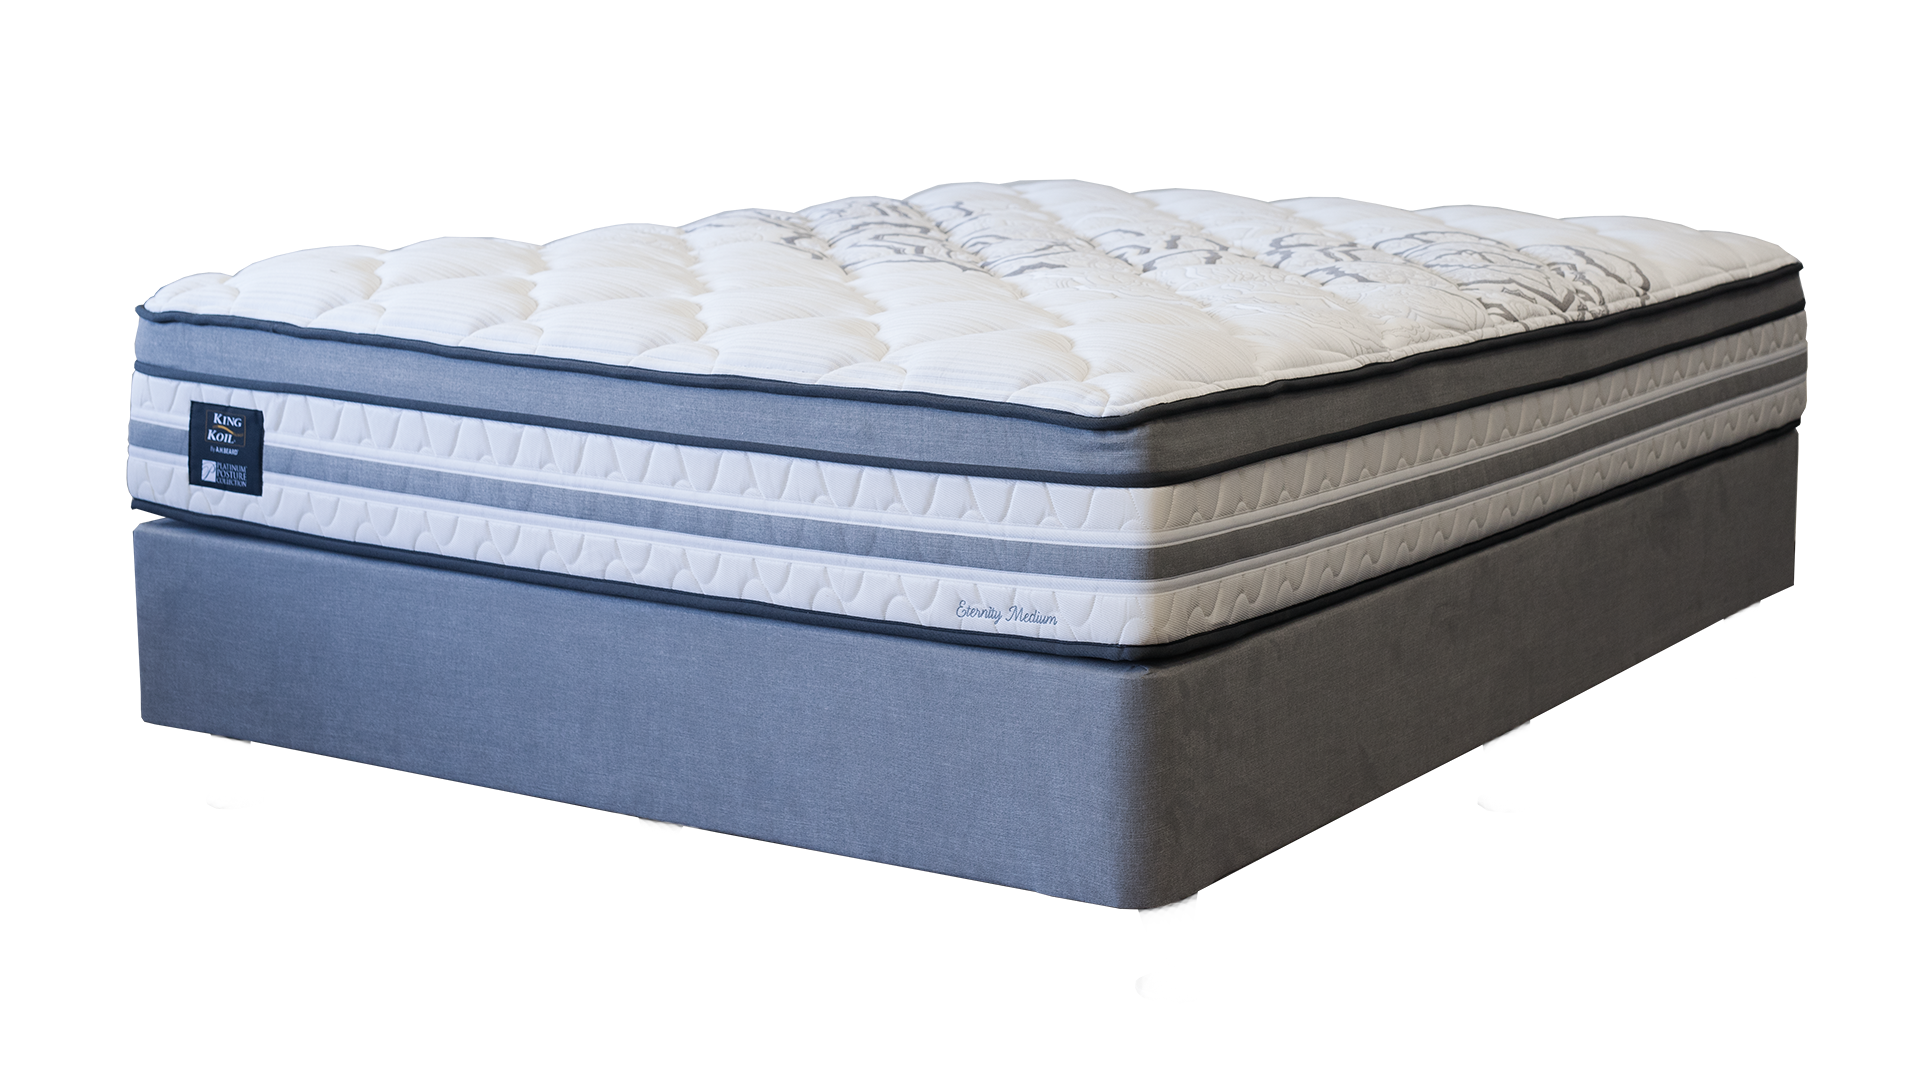 Eternity Medium Queen Bed by King Koil